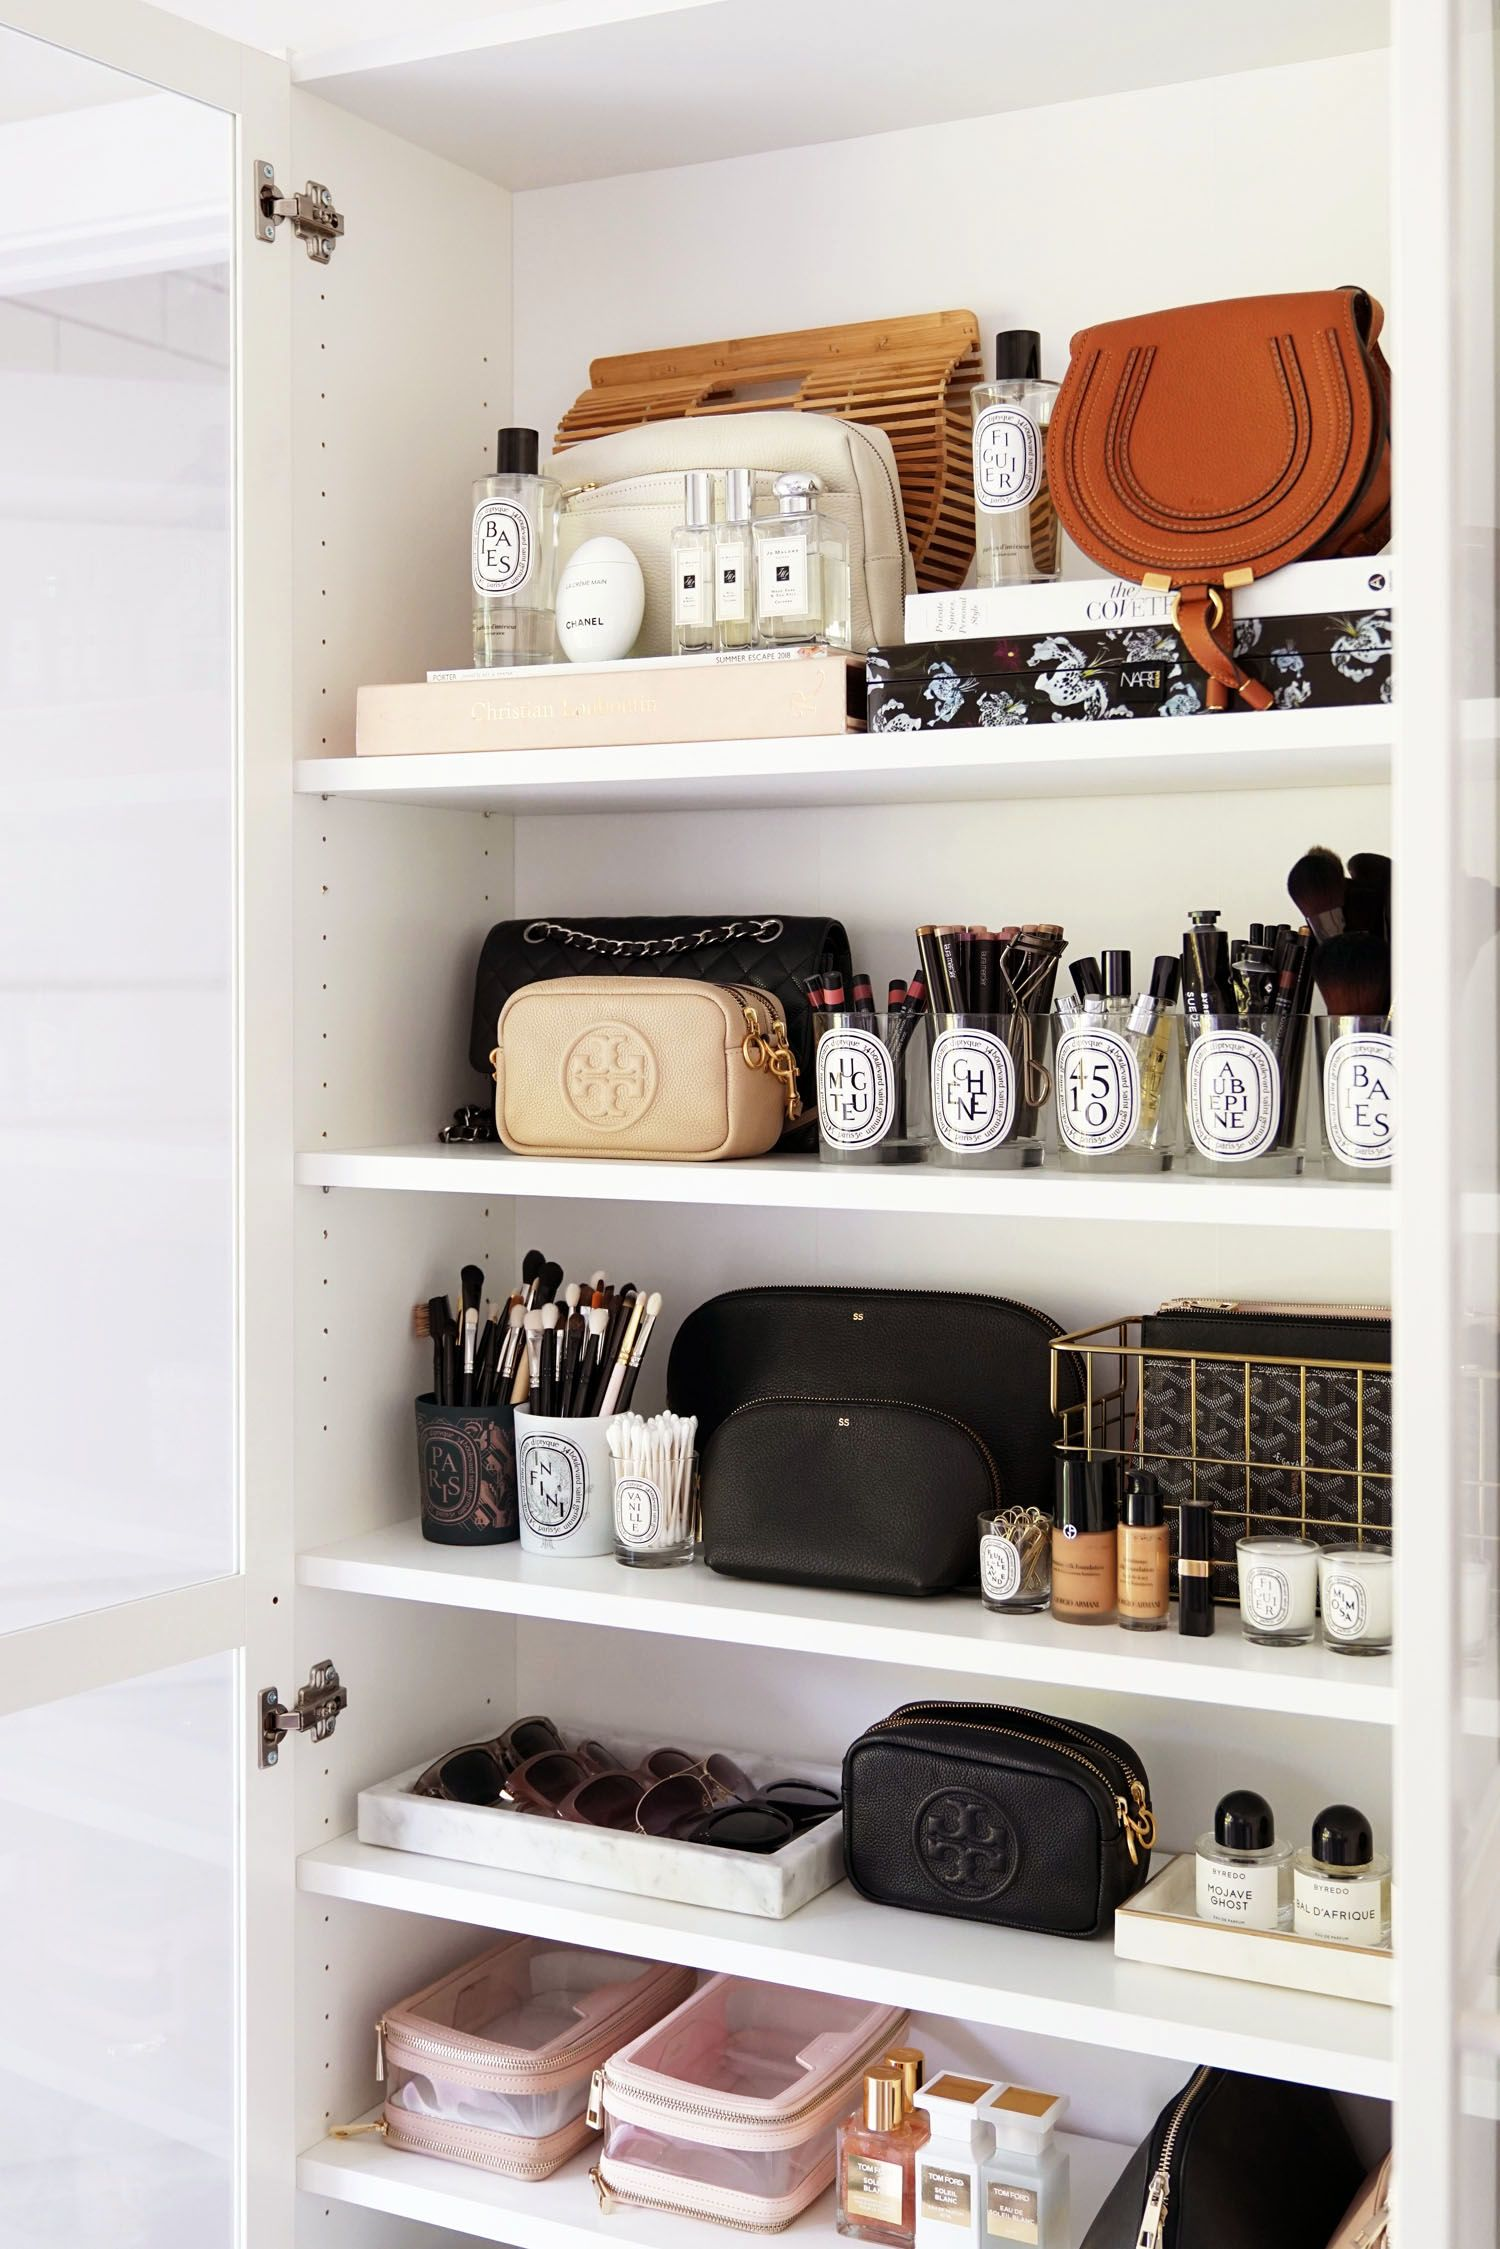 Cleaning Faqs Recycling Diptyque Jars Favorite Brush Cleansers